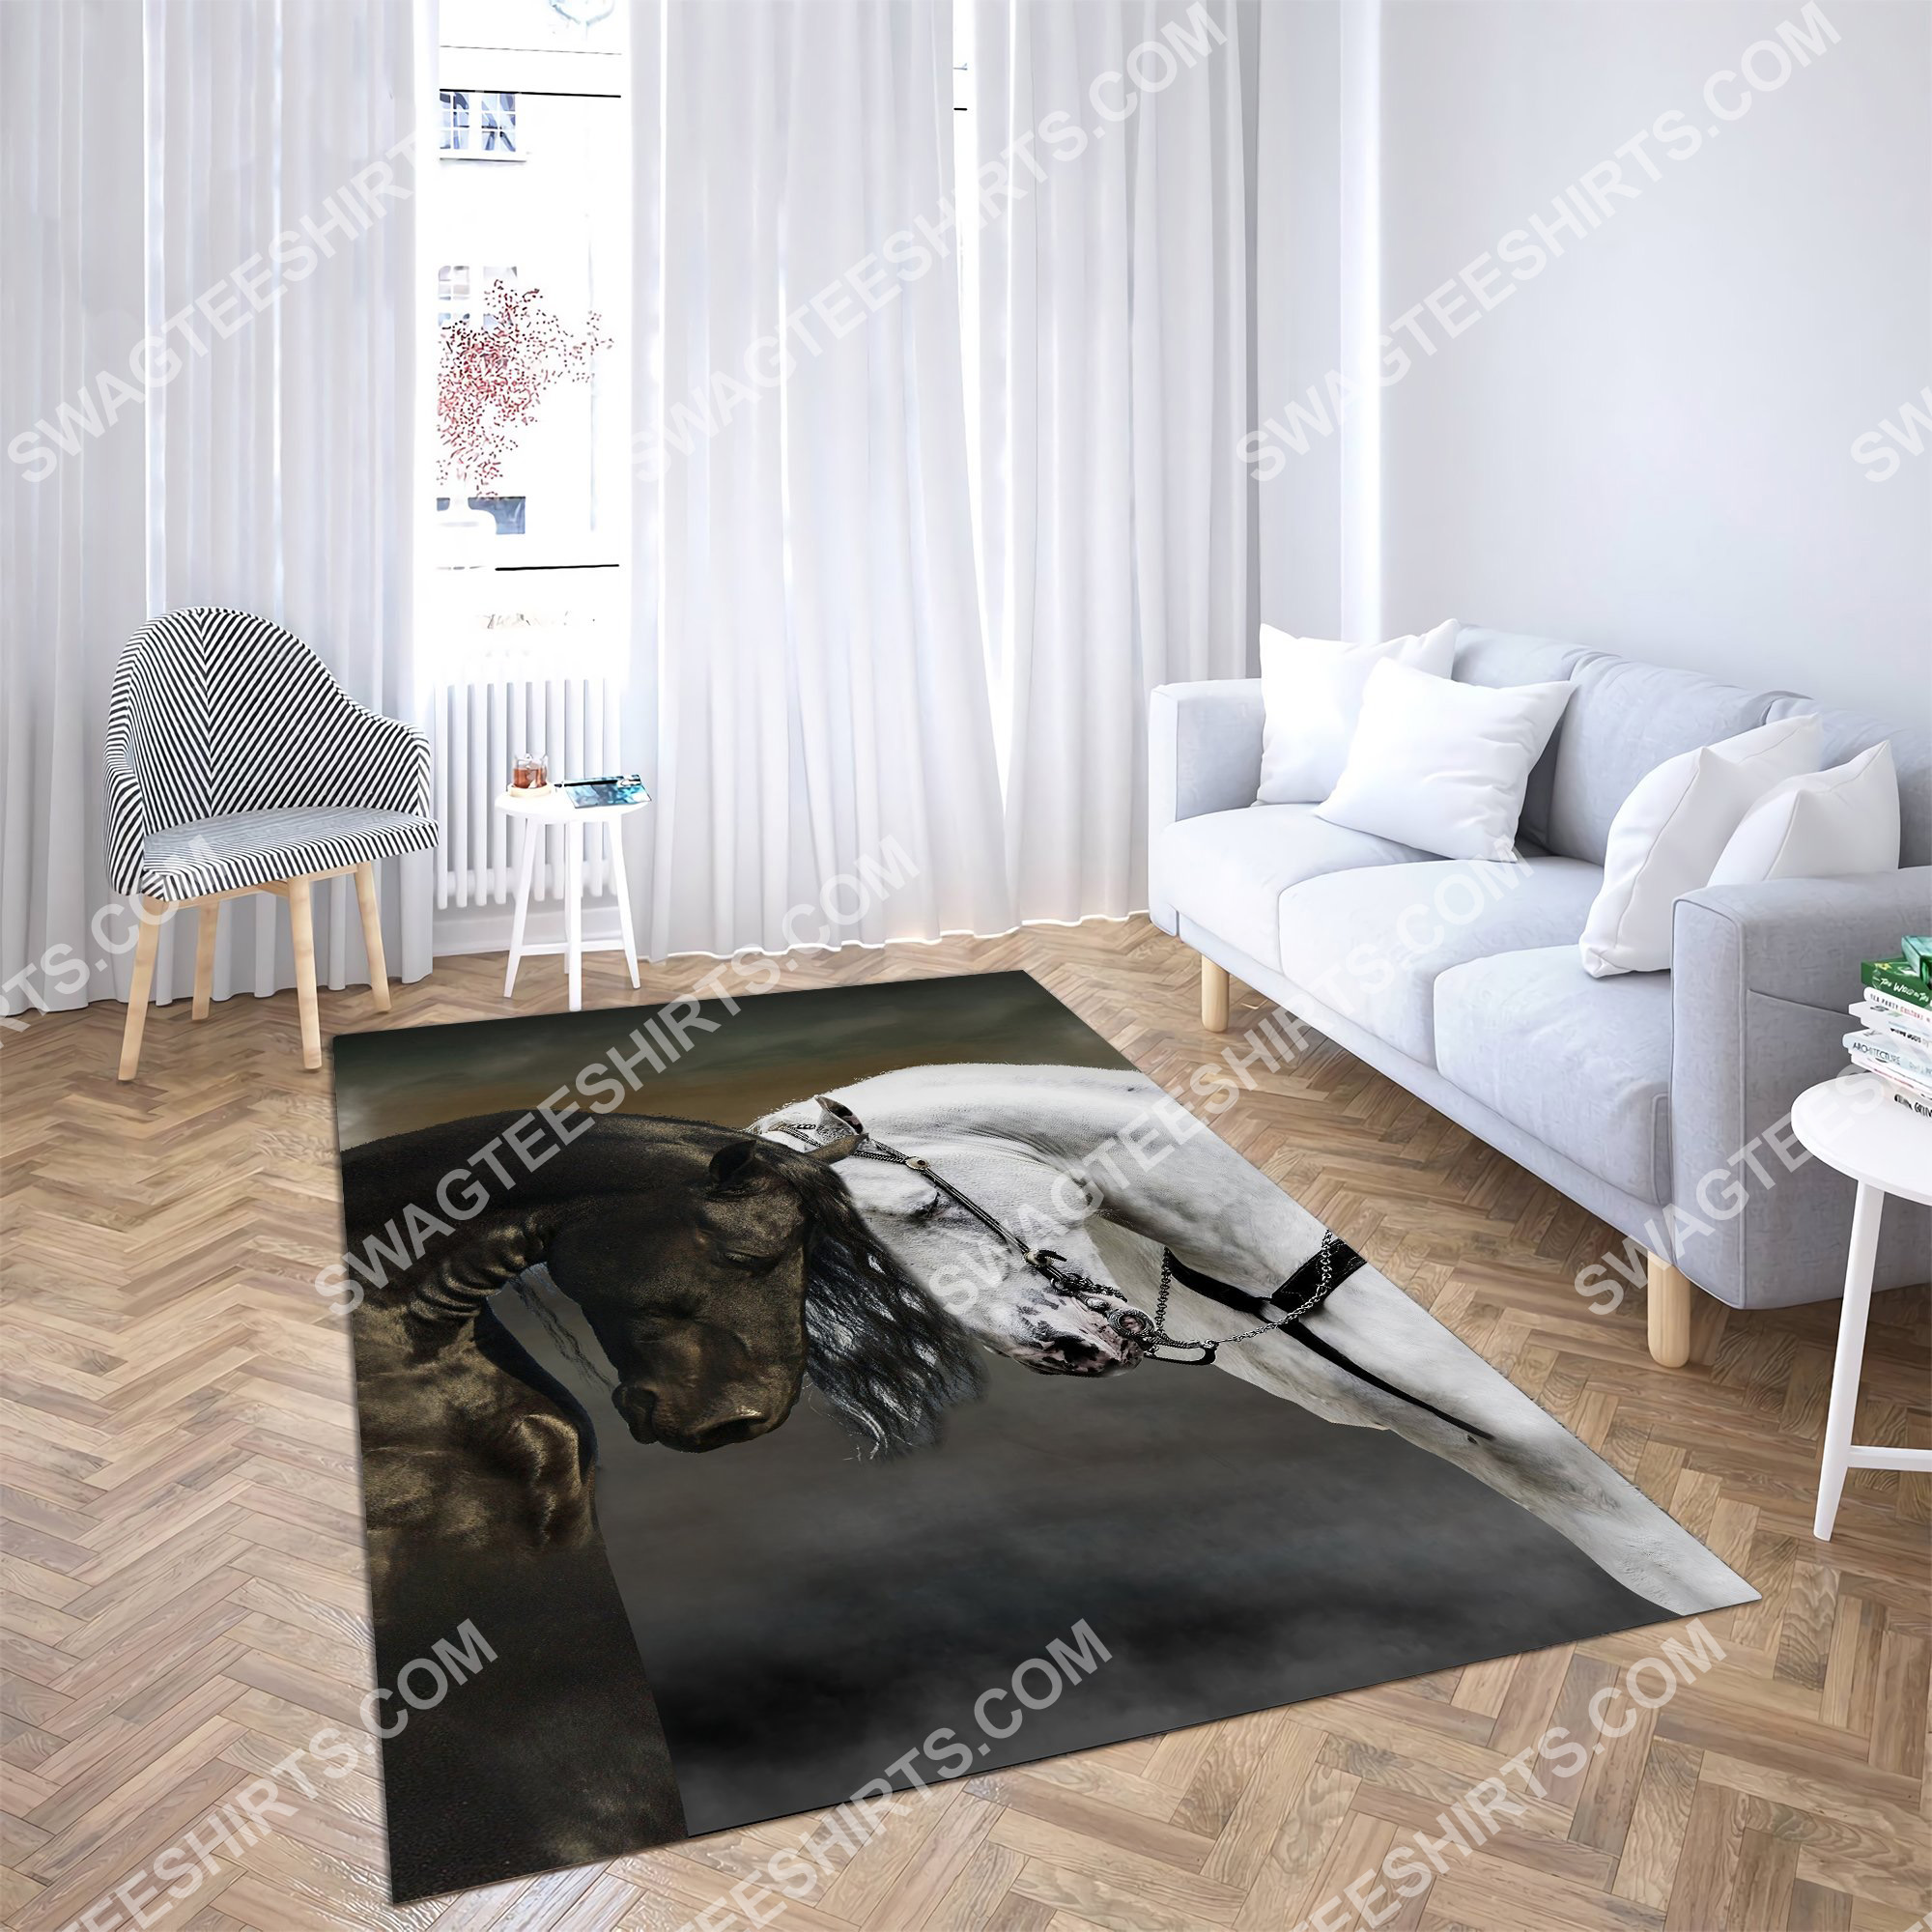 black and white horse couple all over printed rug 4(1)